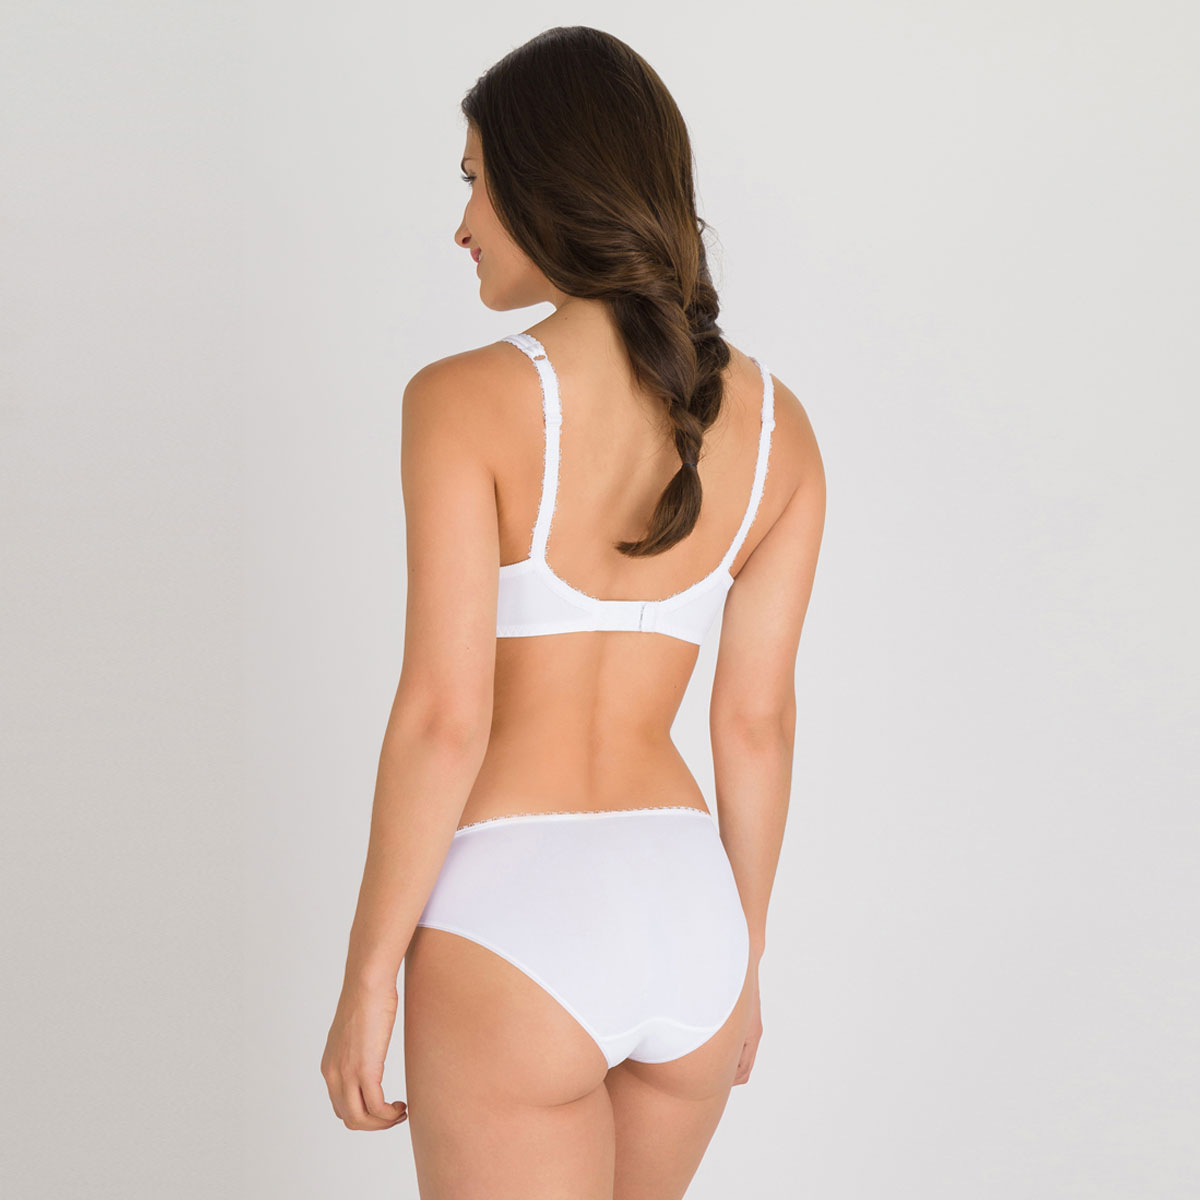 Soutien-gorge spacer sans armatures blanc  - Flower Elegance-PLAYTEX